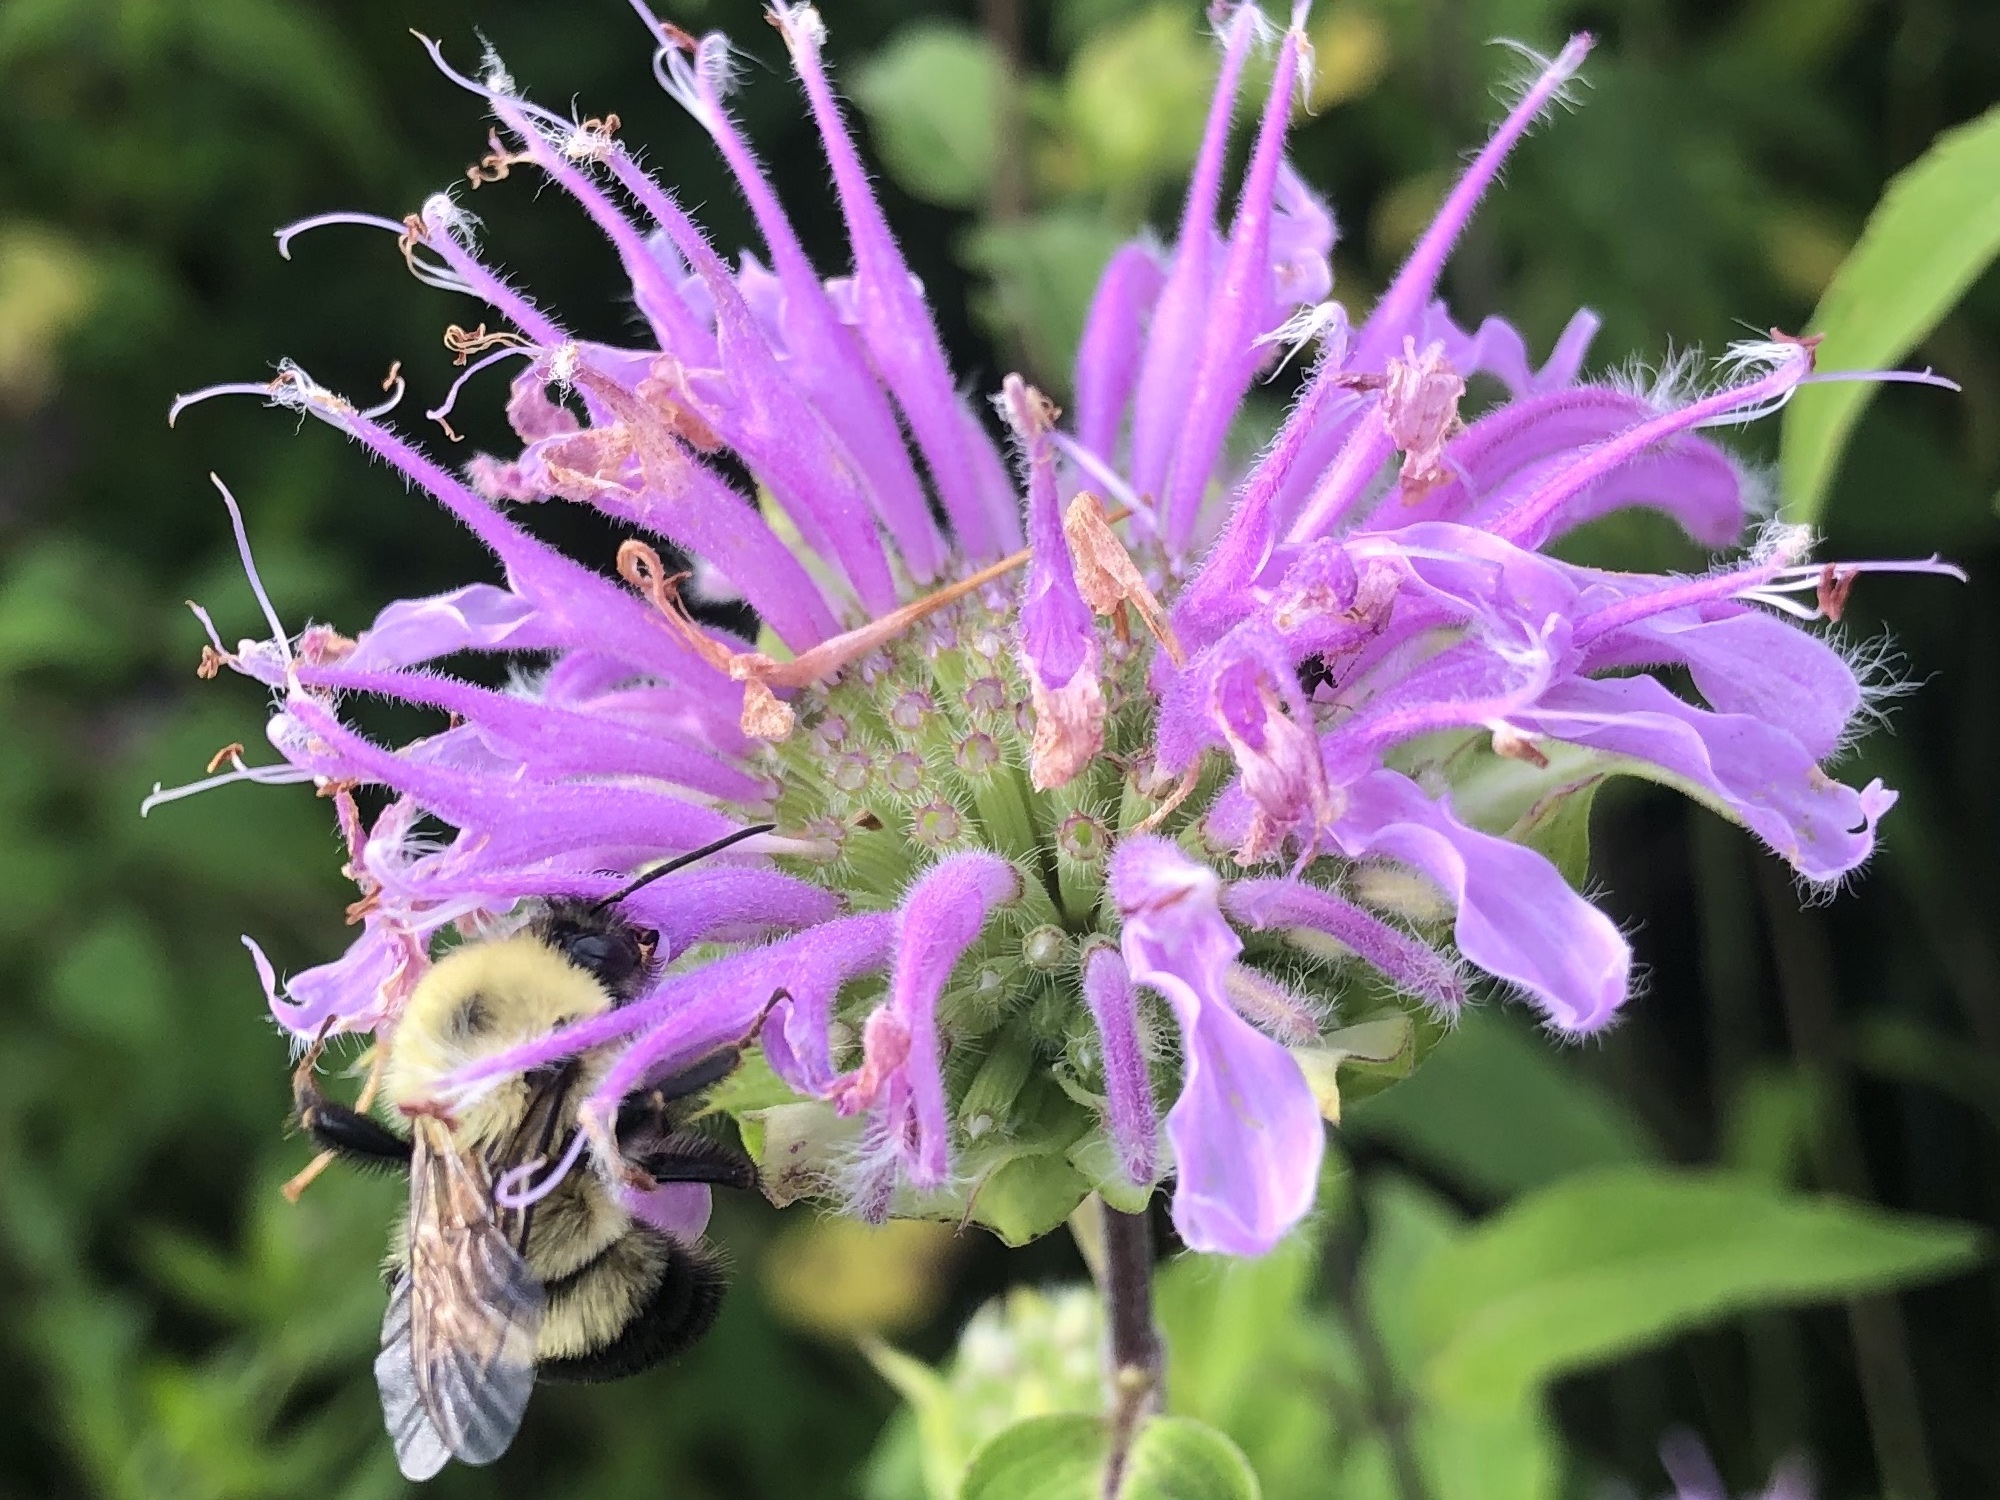 Bumblebee on Bergamot on July 11, 2020.